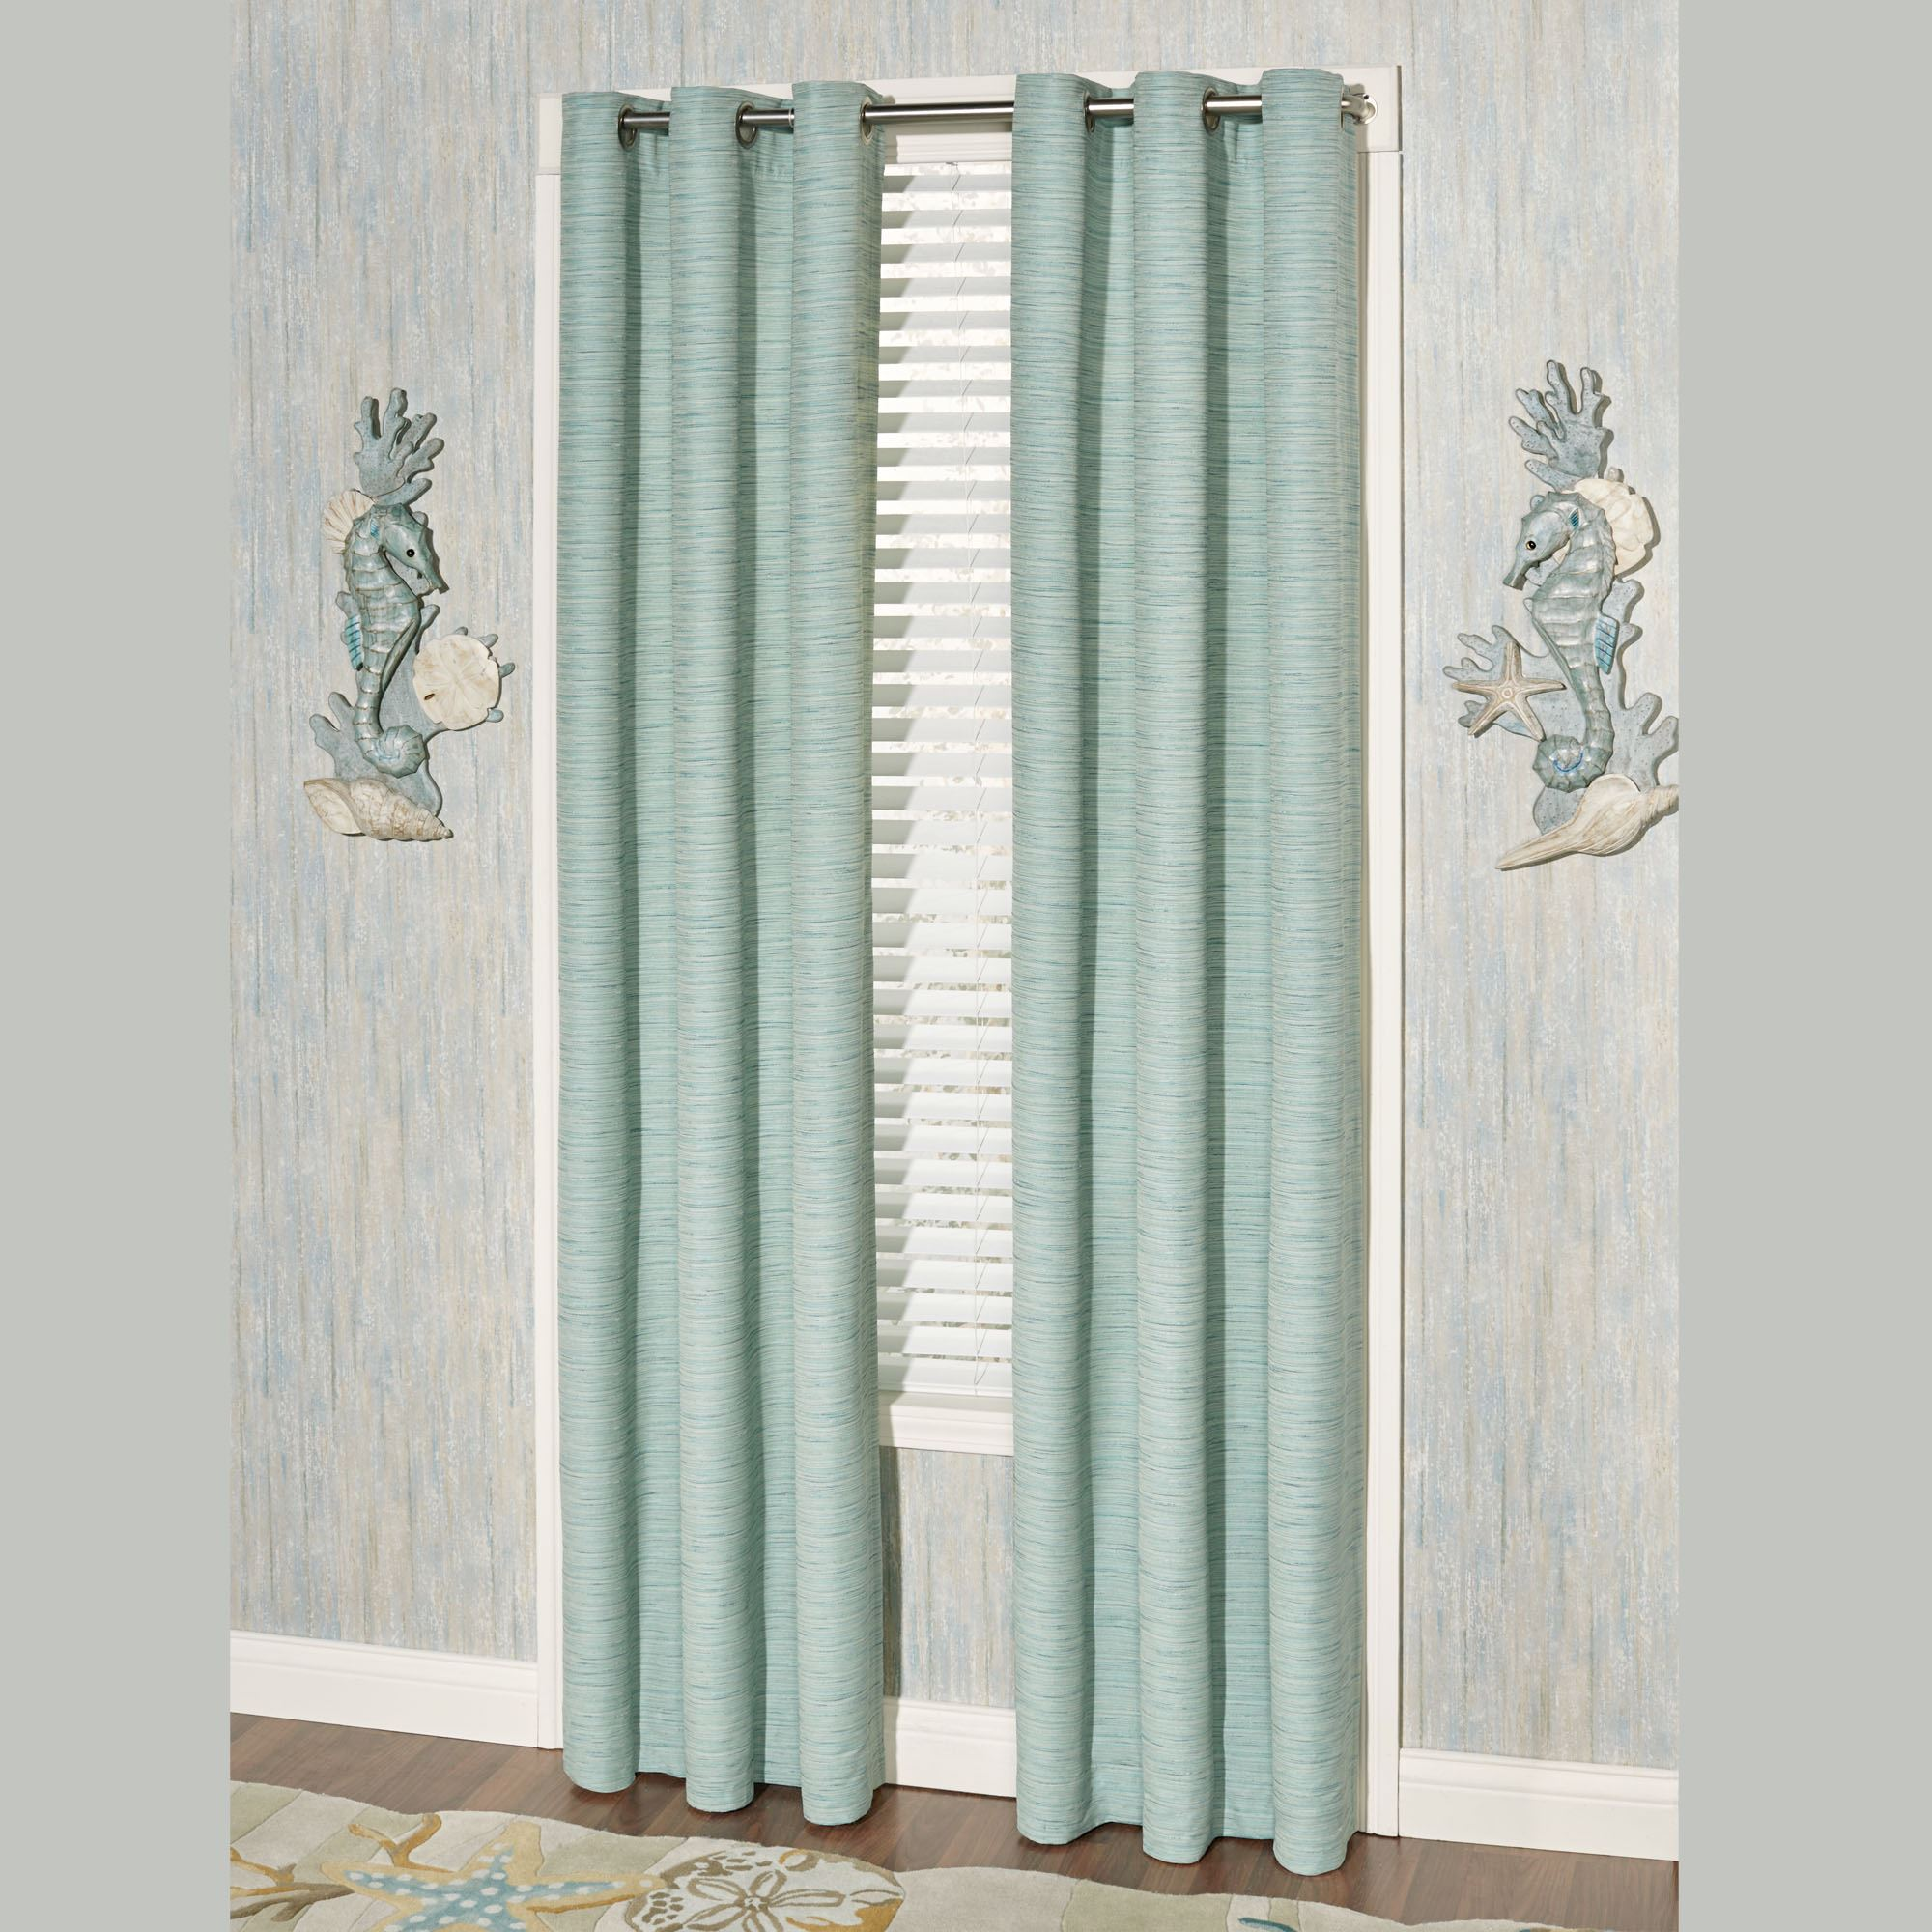 Coastal Dream Grommet Window Treatment